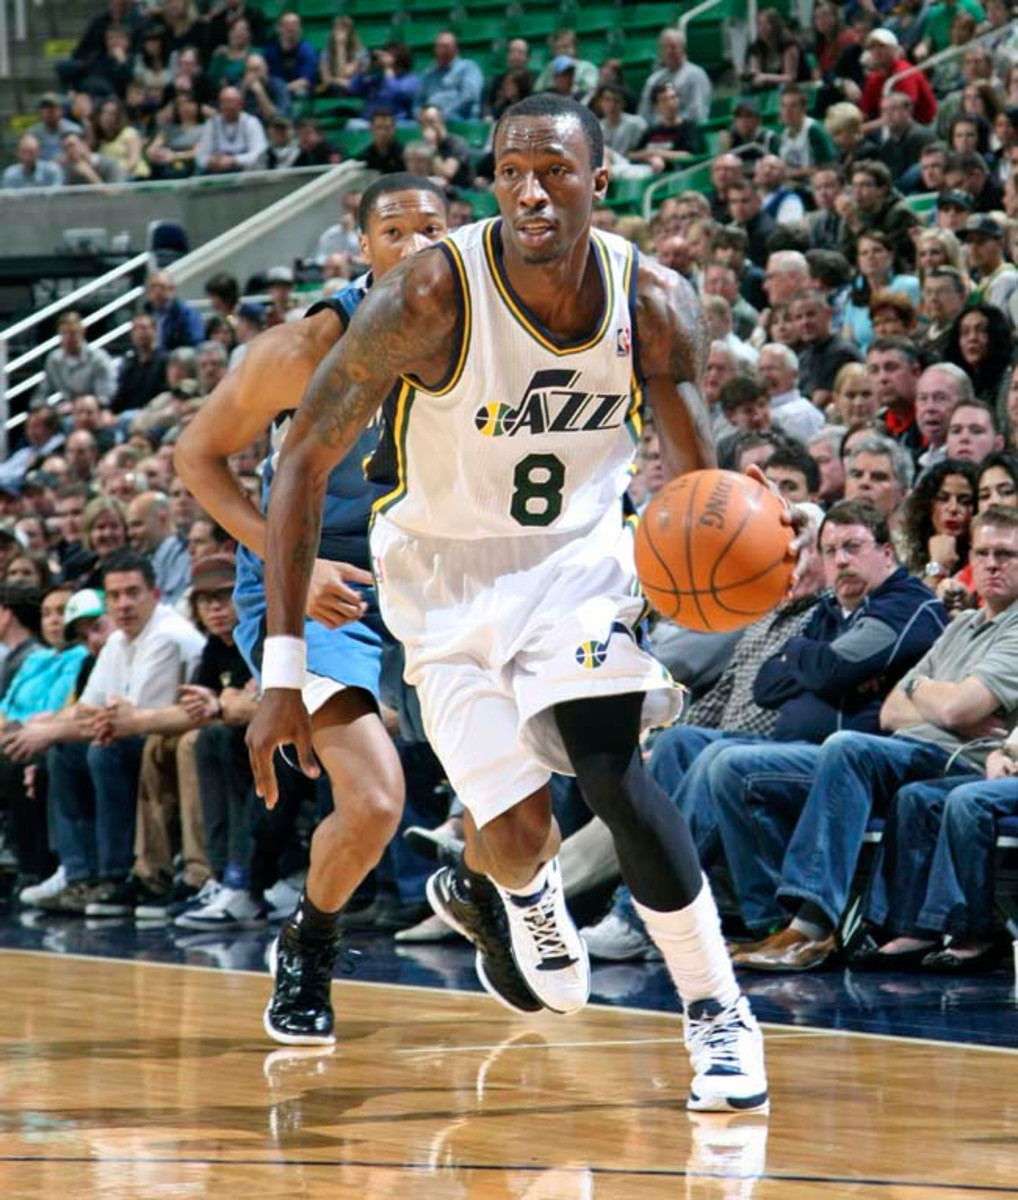 Josh Howard of the Utah Jazz moves the ball against the Minnesota Timberwolves on March 15, 2012 in Salt Lake City, Utah. The Wolves have agreed to a one-year deal with the free-agent small forward. (Photo by Melissa Majchrzak/NBAE via Getty Images)